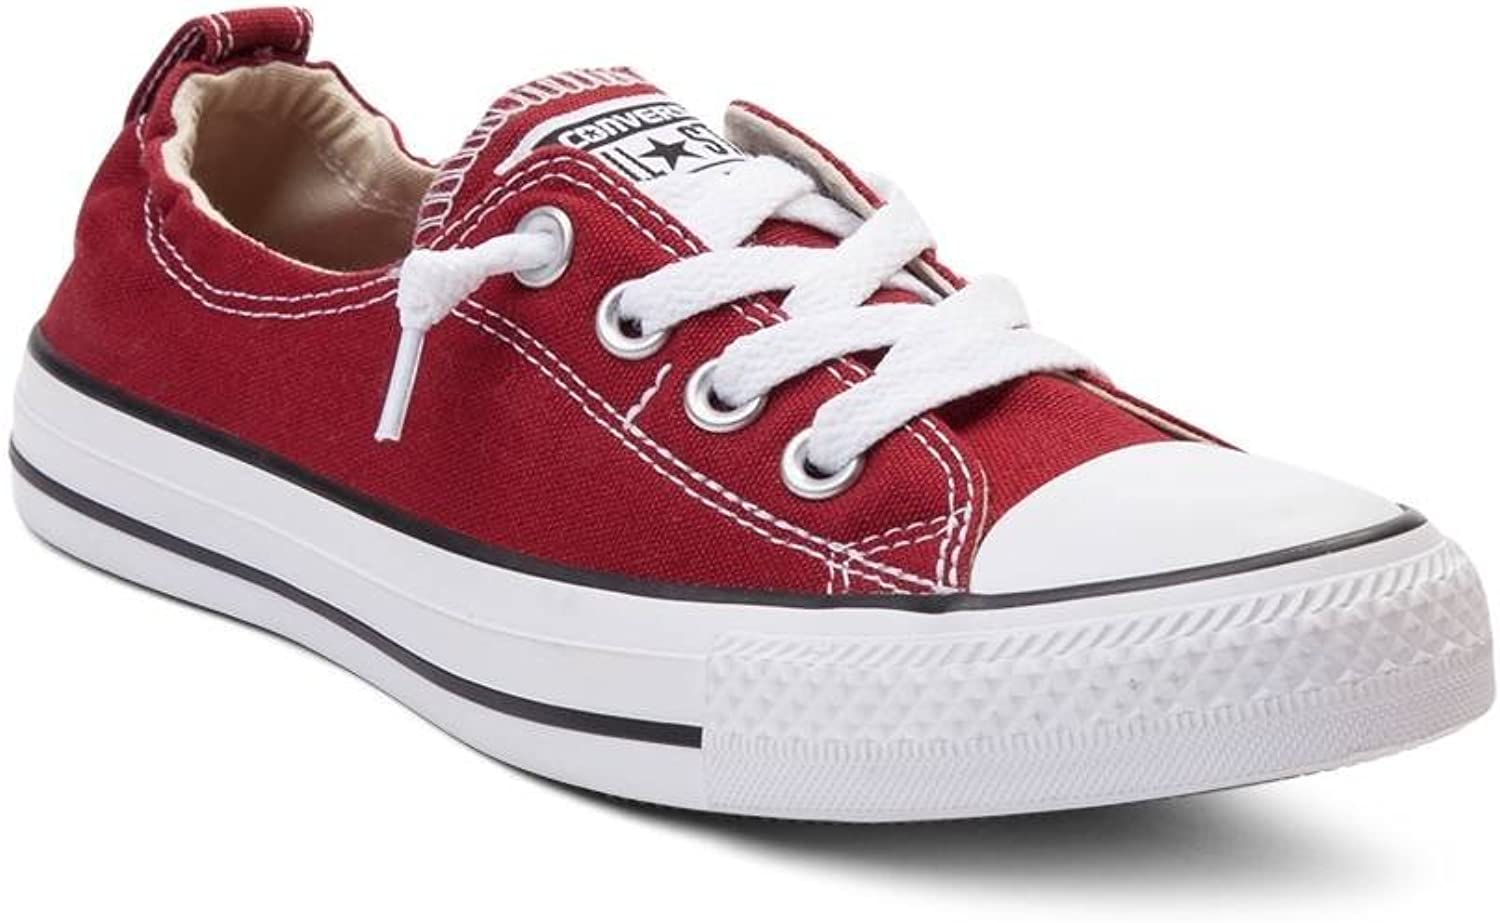 Converse Unisex Chuck Taylor All Star Low Top Medium